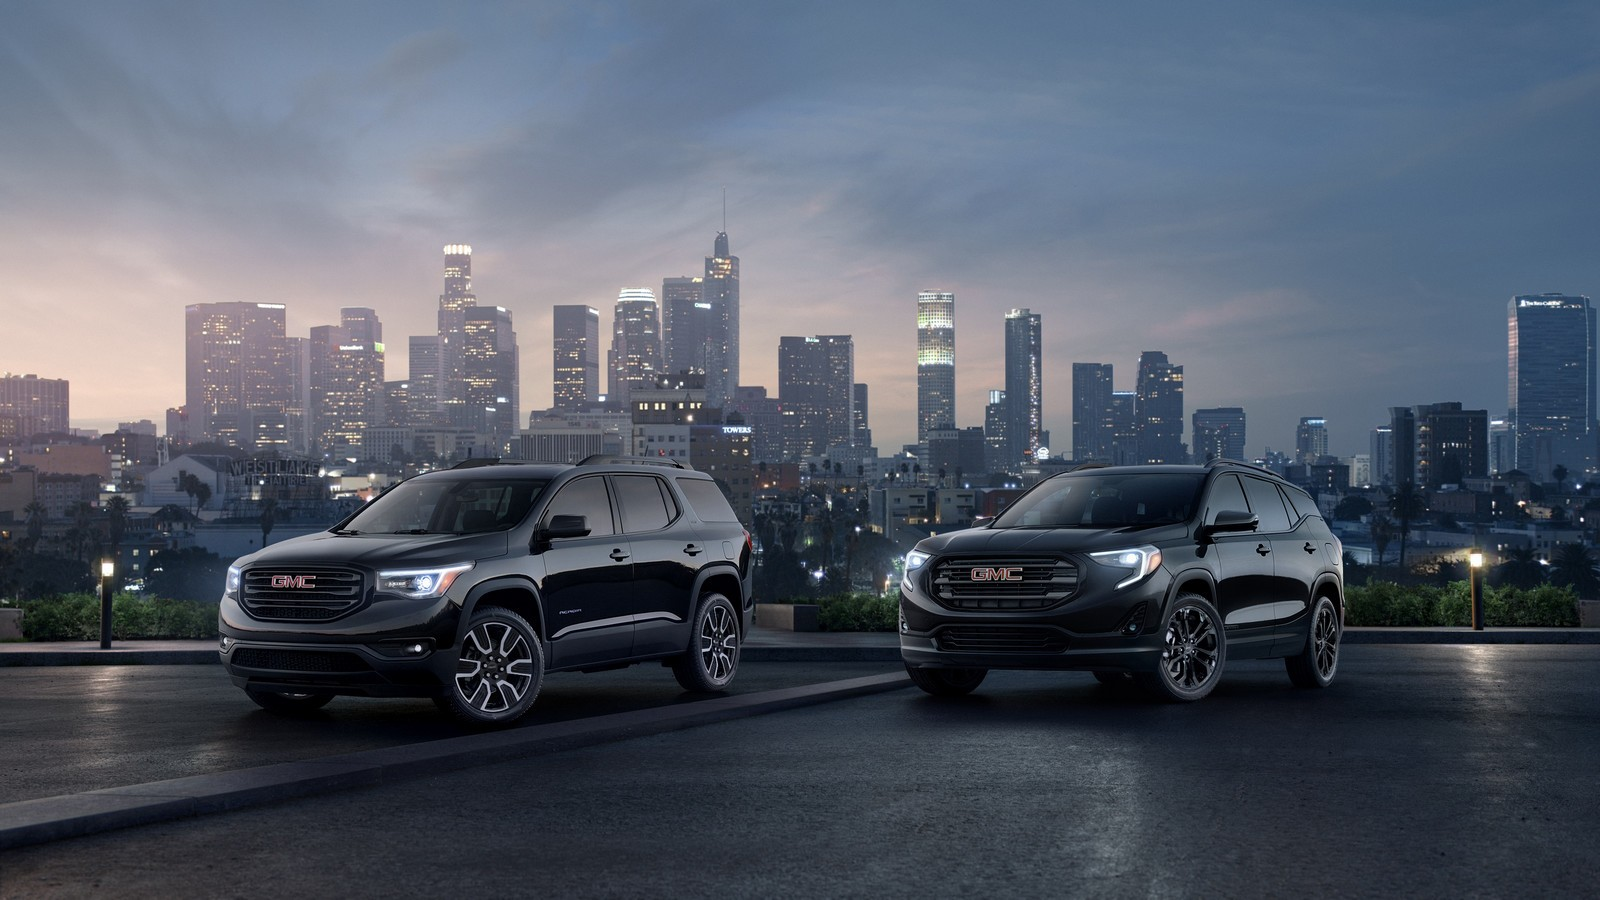 GMC is expanding offerings for its premium SUV lineup with the 2